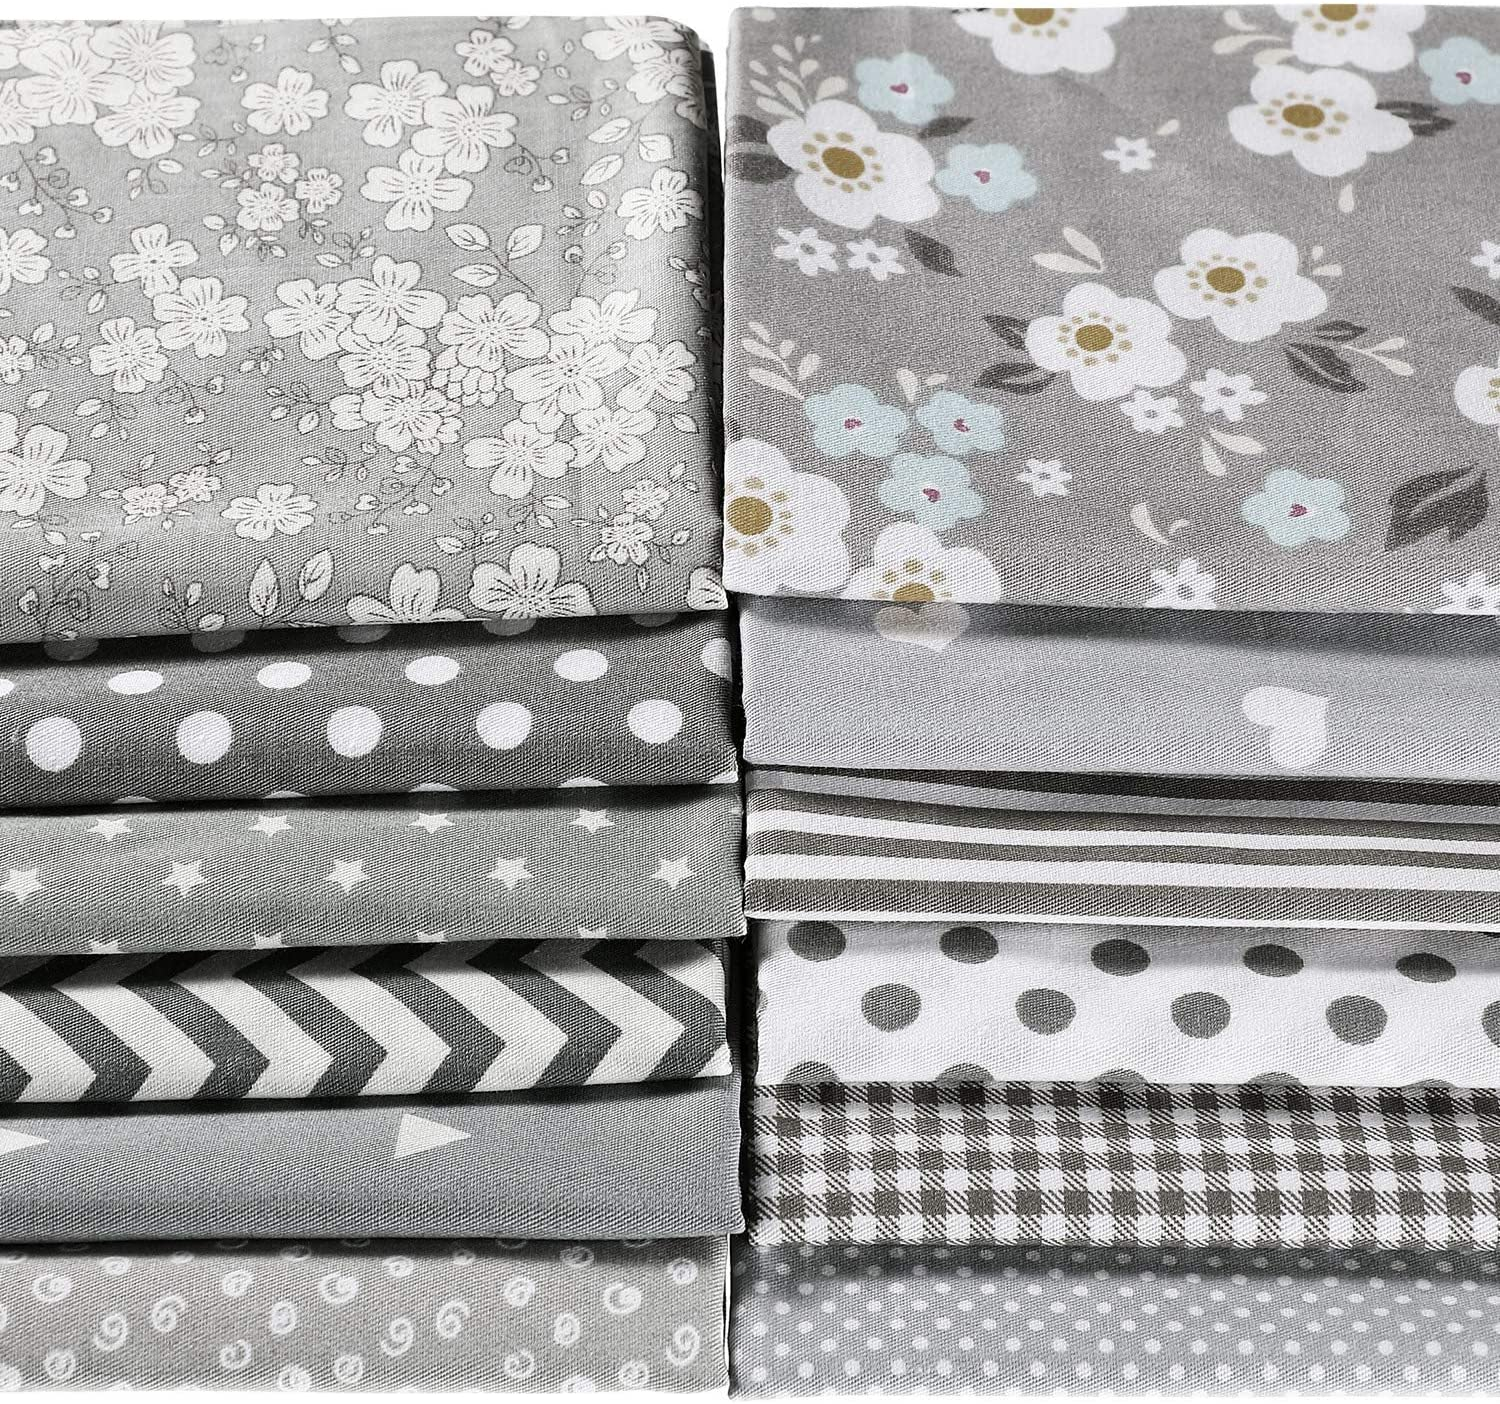 12 Pieces Quilting Fabric Grey Fat Quarters Floral Craft Fabric Bundle Patchwork Pre-Cut Sewing Square Sheets, 20 x 16 Inch/ 50 x 40 cm